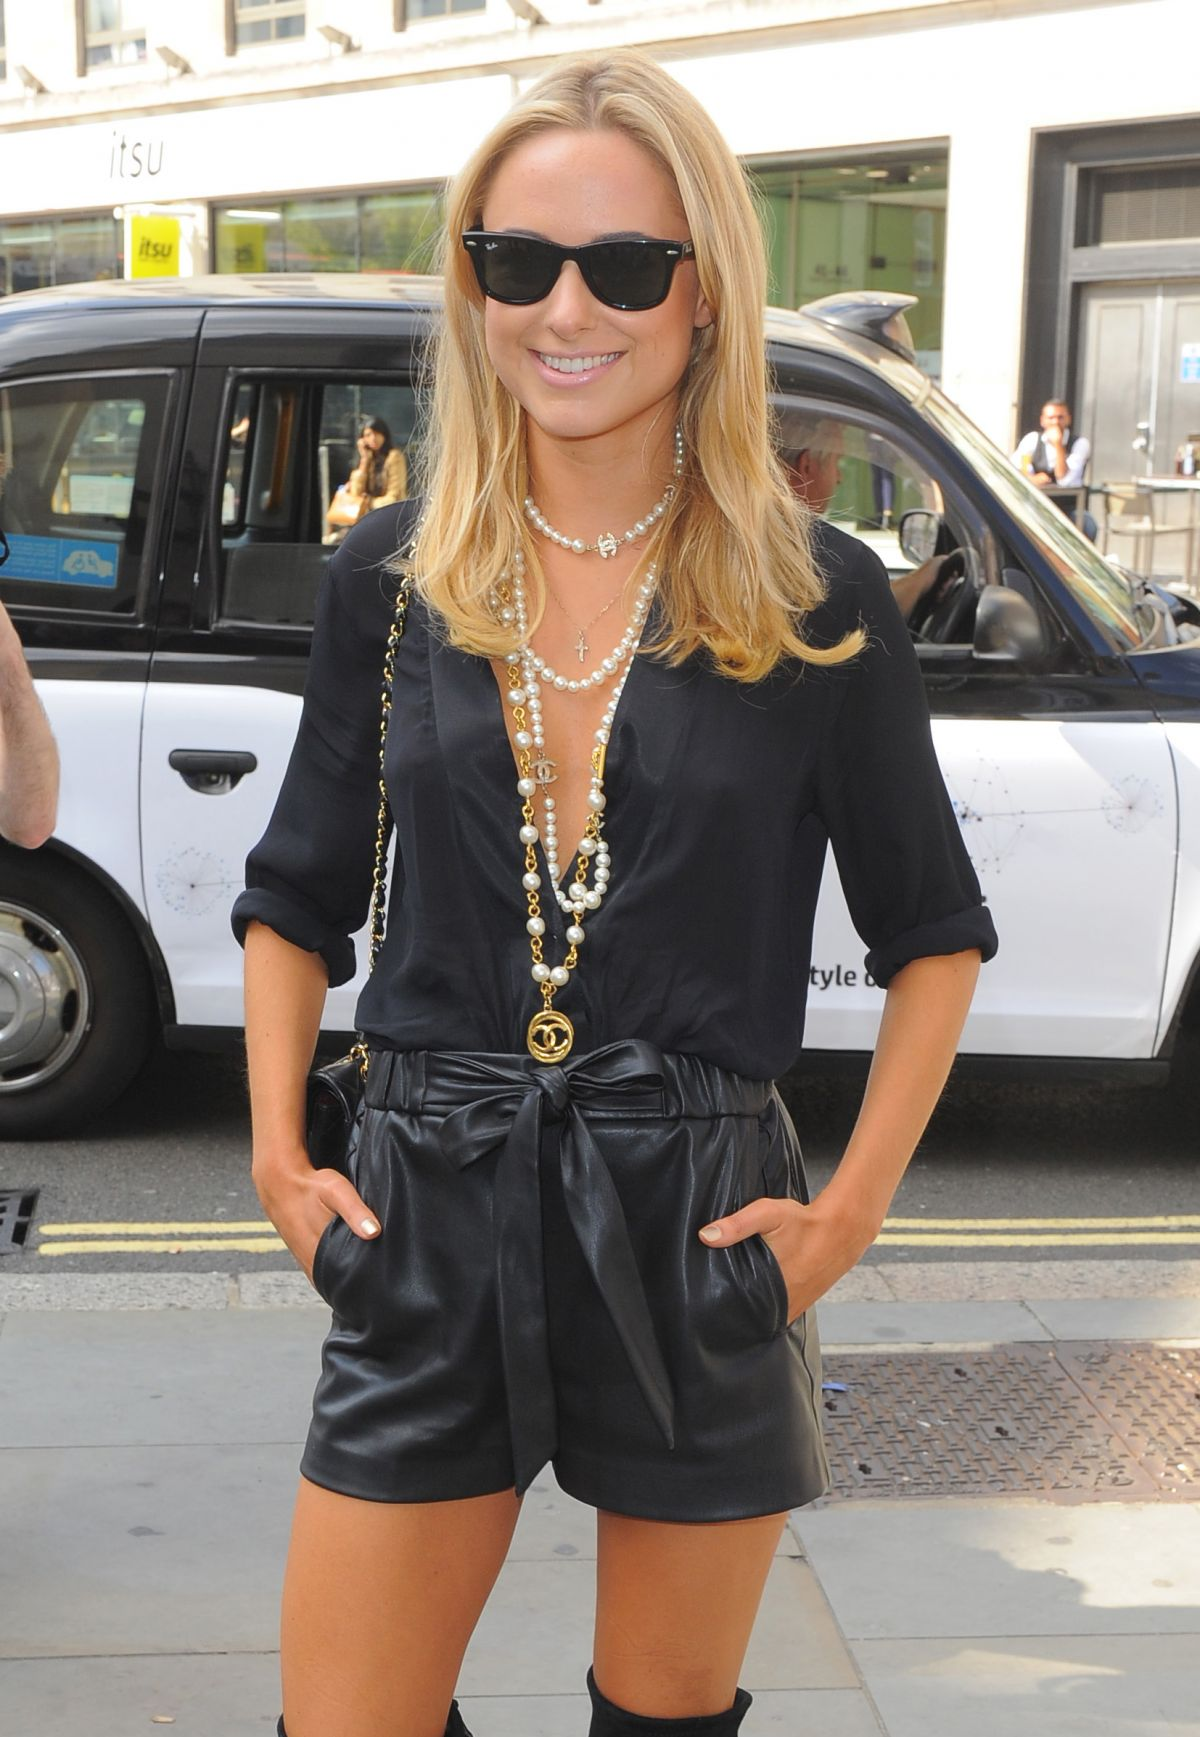 KIMBERLY omerset house for london fashion week - 12/09/2014